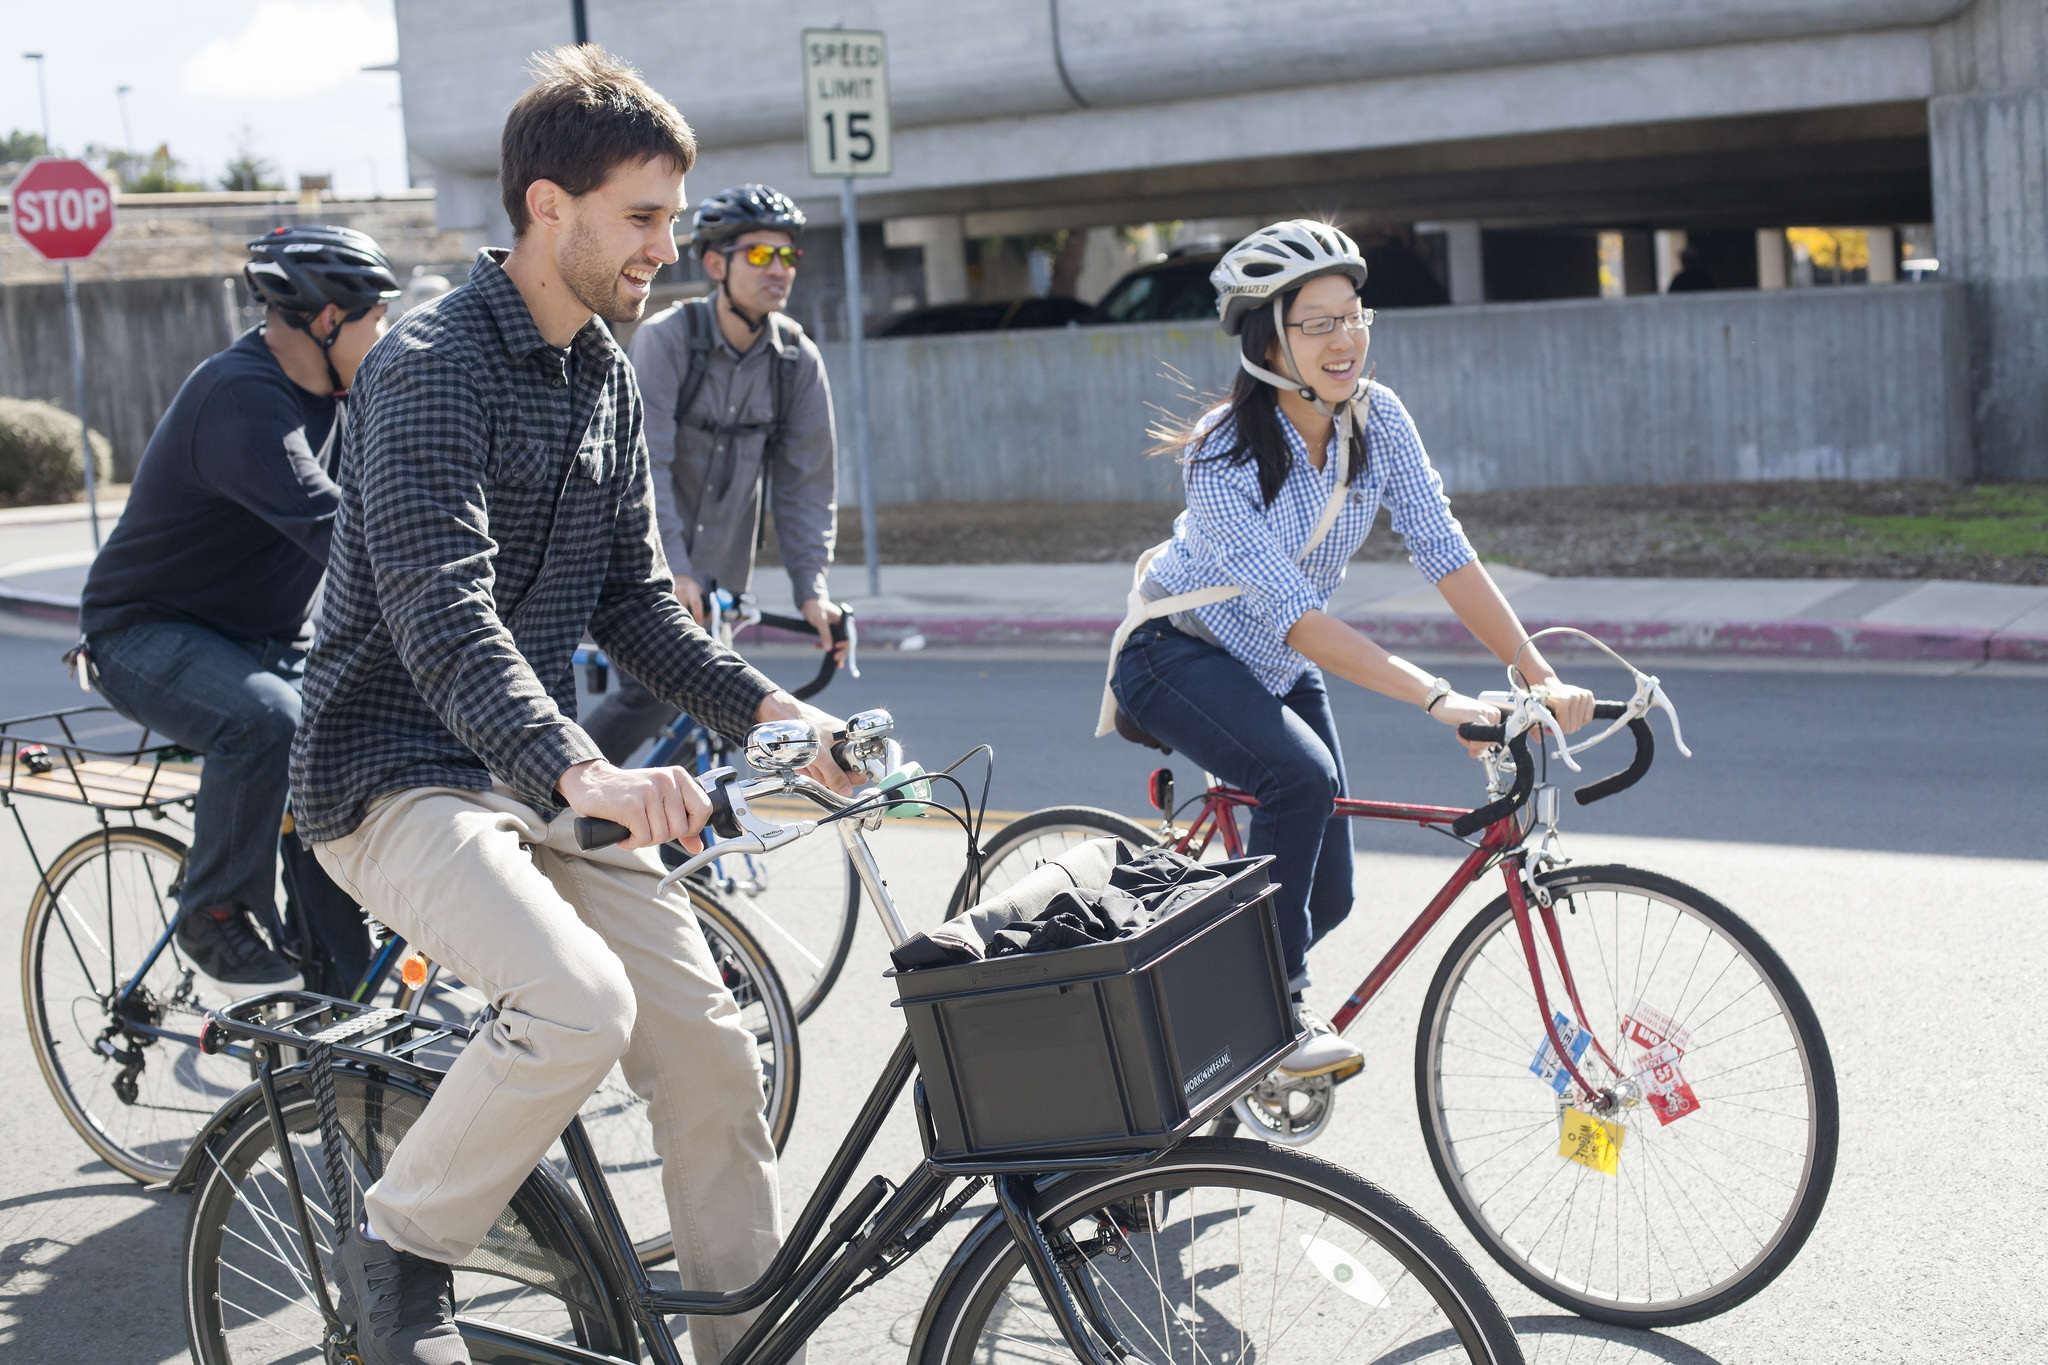 Mark Dreger (left) and Janice Li (right) taking biking to the first stop of prospective sites concerning cycling traffic by the San Francisco Municipal Transportation Agency Saturday, Nov. 1, 2014.